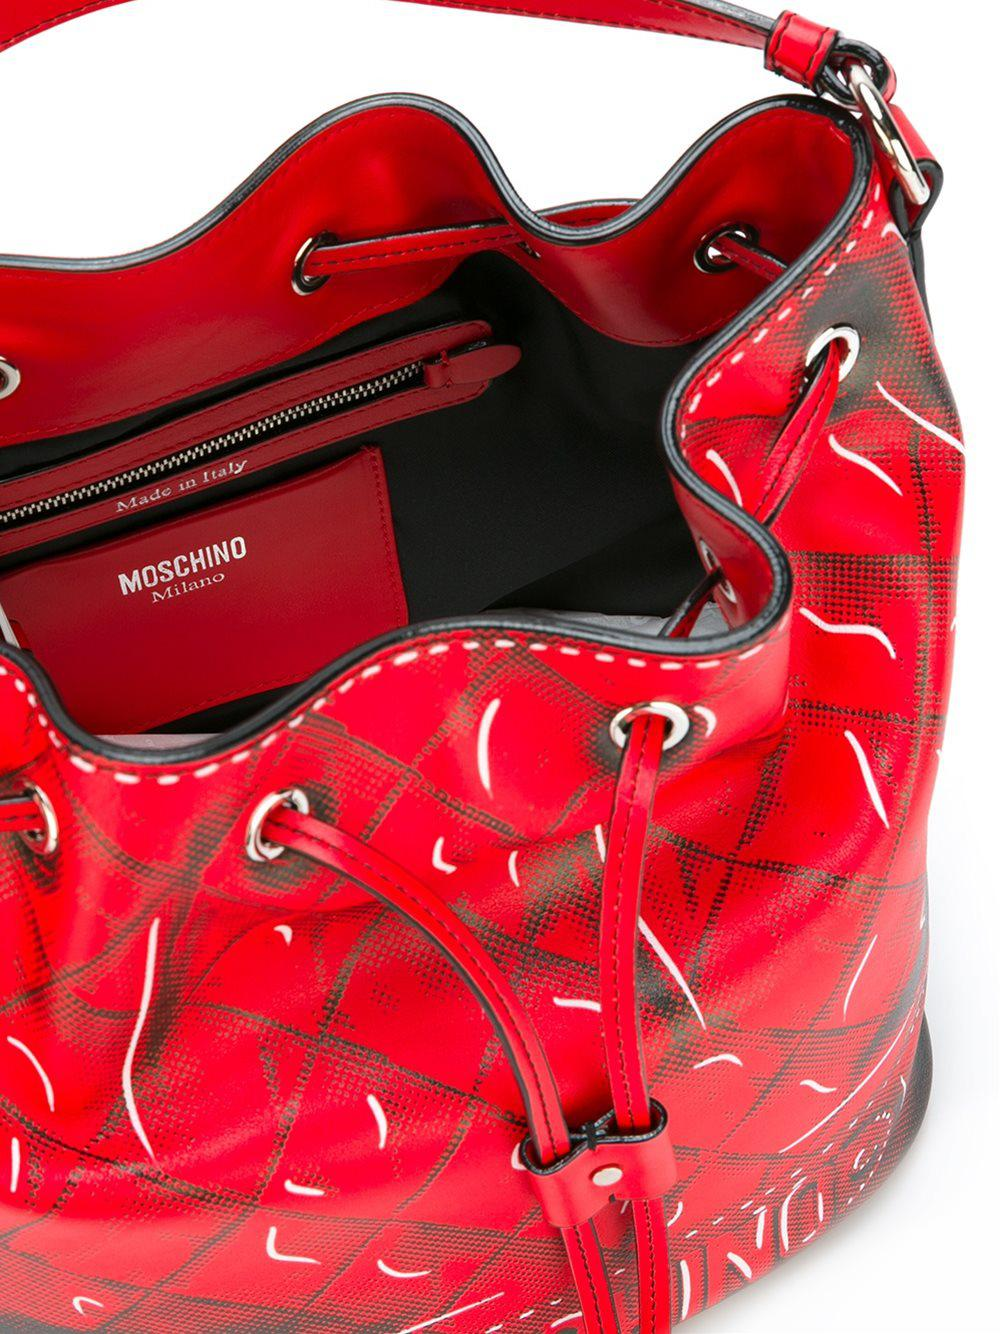 Moschino Leather Trompe-l'oeil Bucket Tote in Red